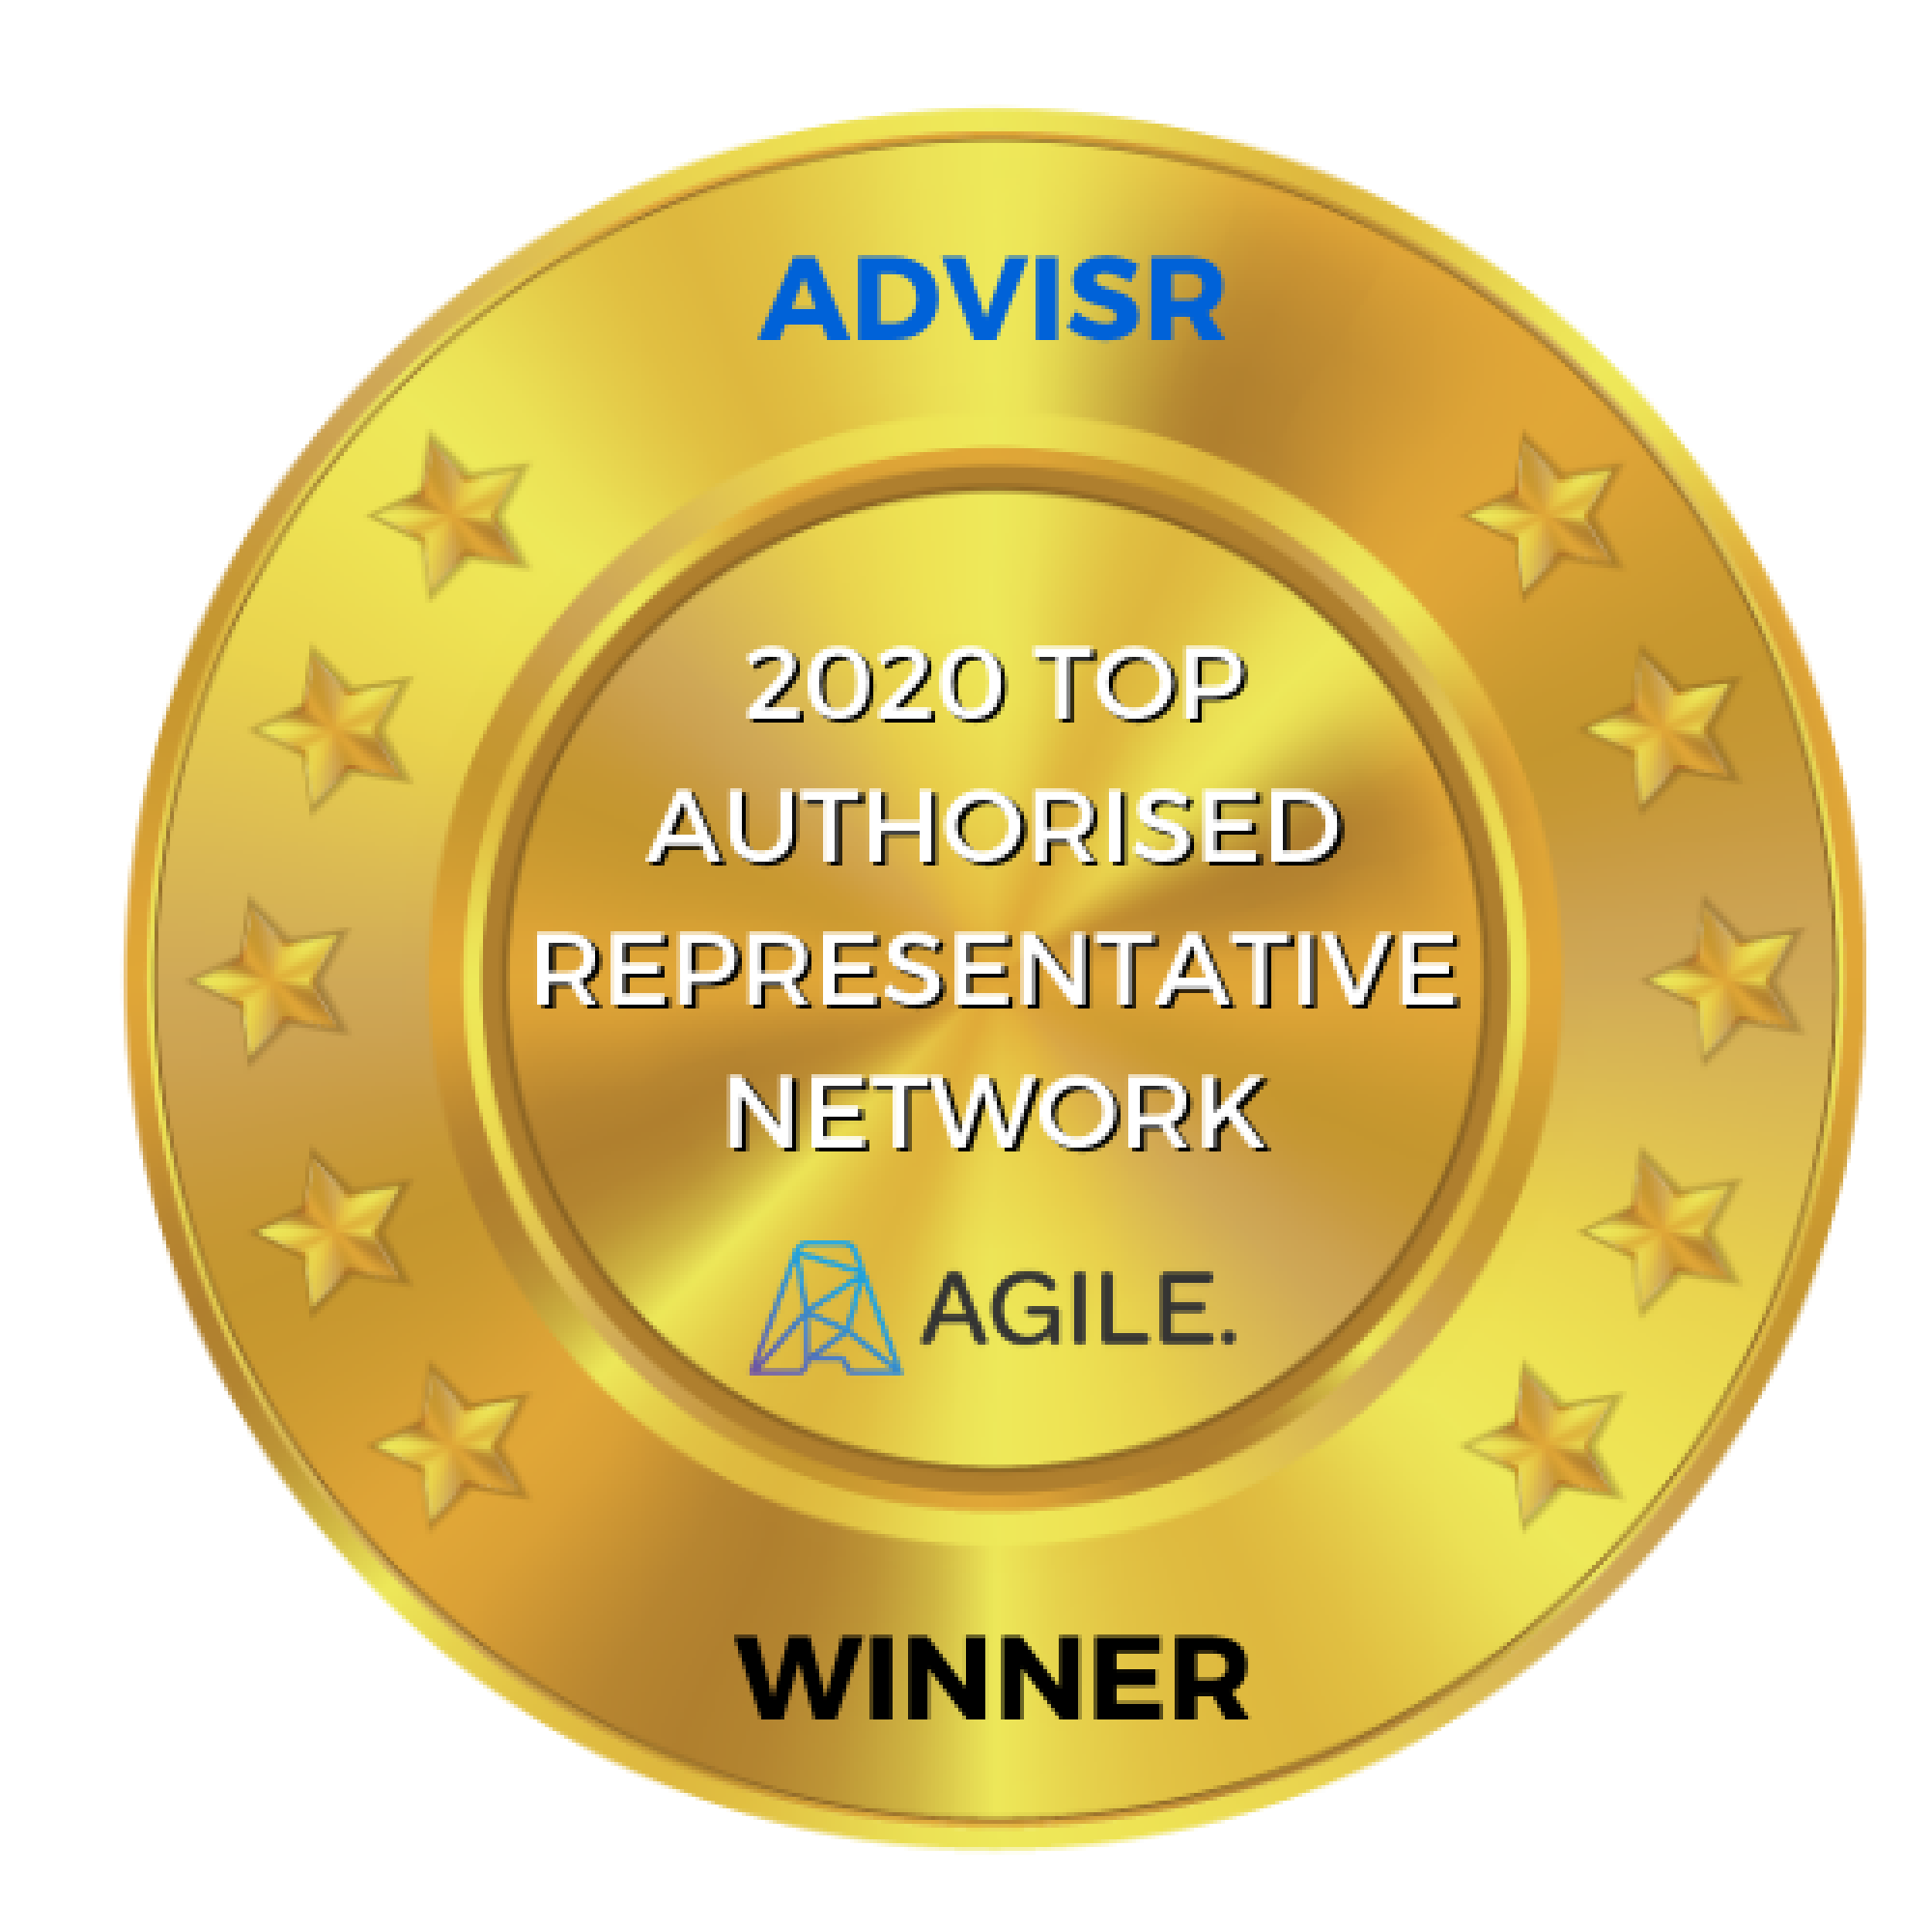 Advisr Insurance Broker Awards 2020 Winner | Top Authorised Representative Network